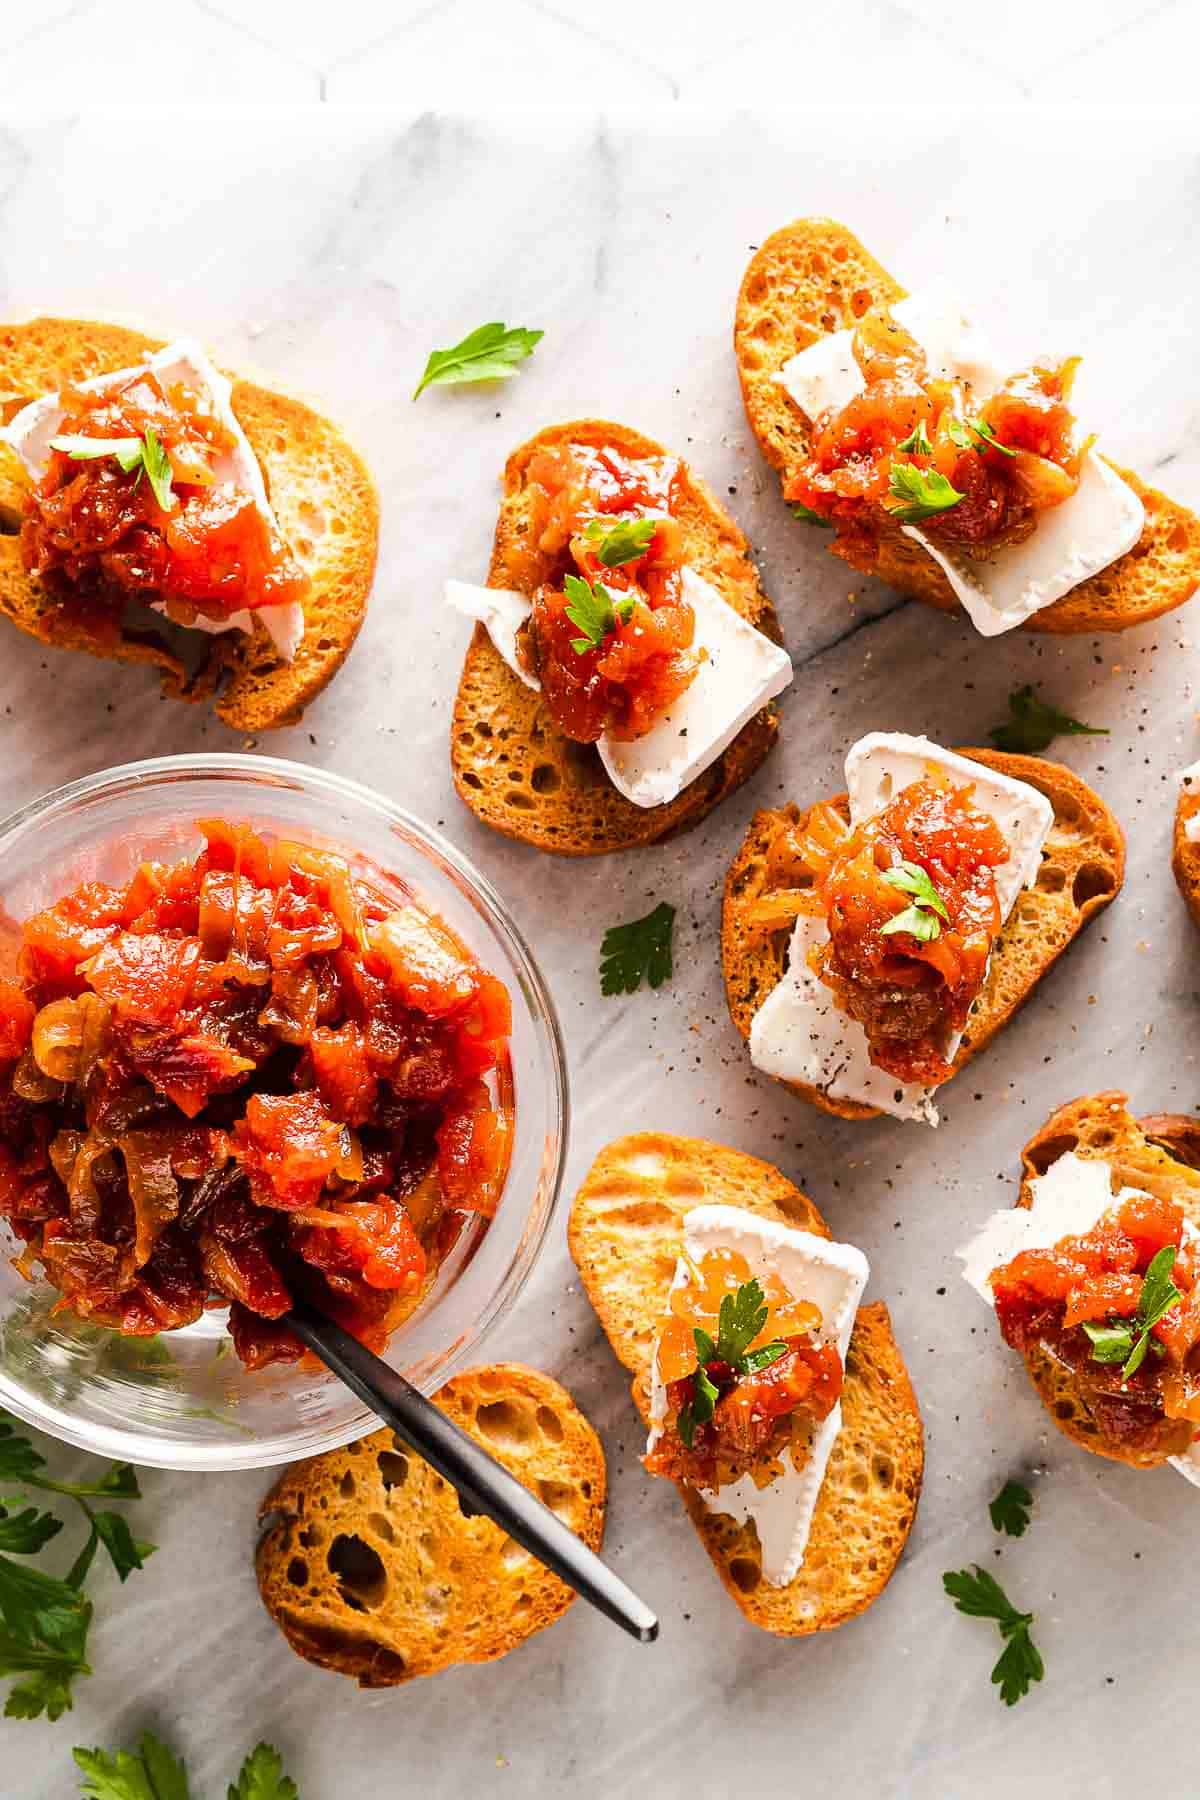 Caramelized Onion and Tomato Jam on Crostini